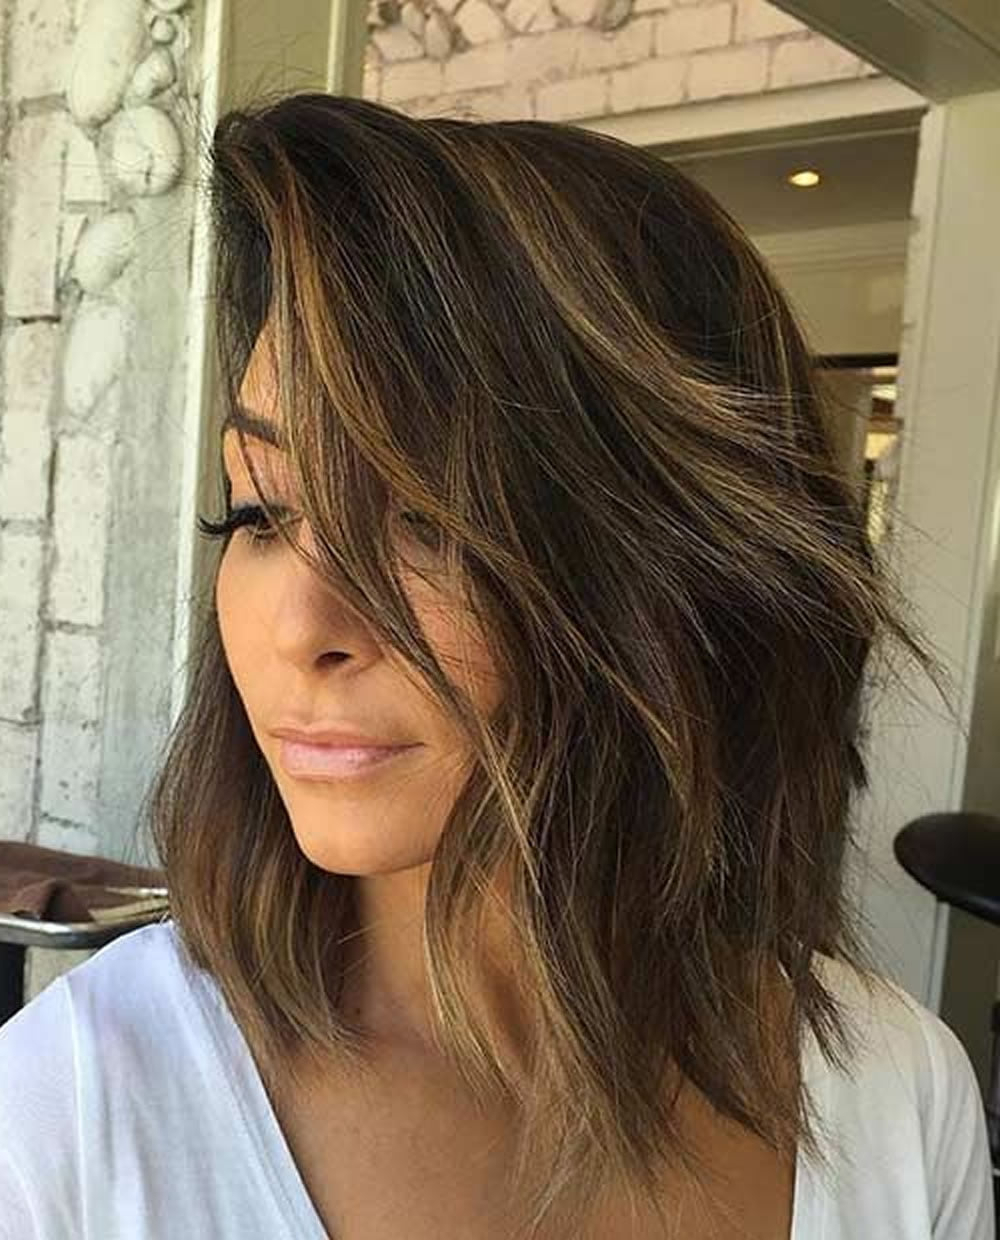 28 Layered Long Bob Hairstyles And Lob Haircuts 2018 Throughout Well Liked Lob Hairstyles With Face Framing Layers (View 2 of 20)